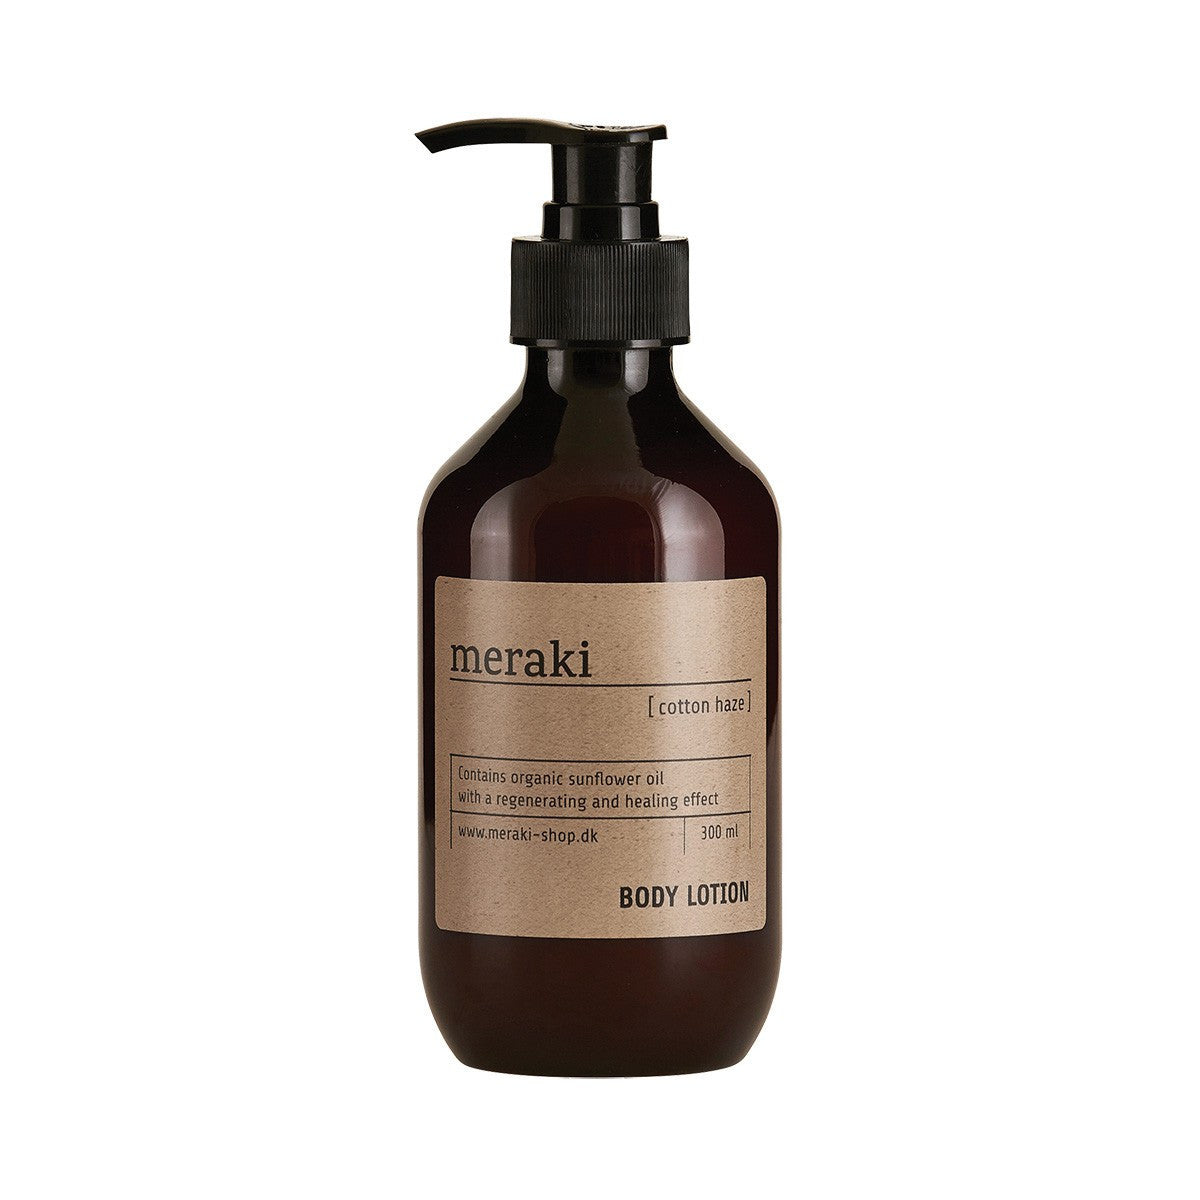 Body Lotion, Cotton Haze 300ml fra Meraki